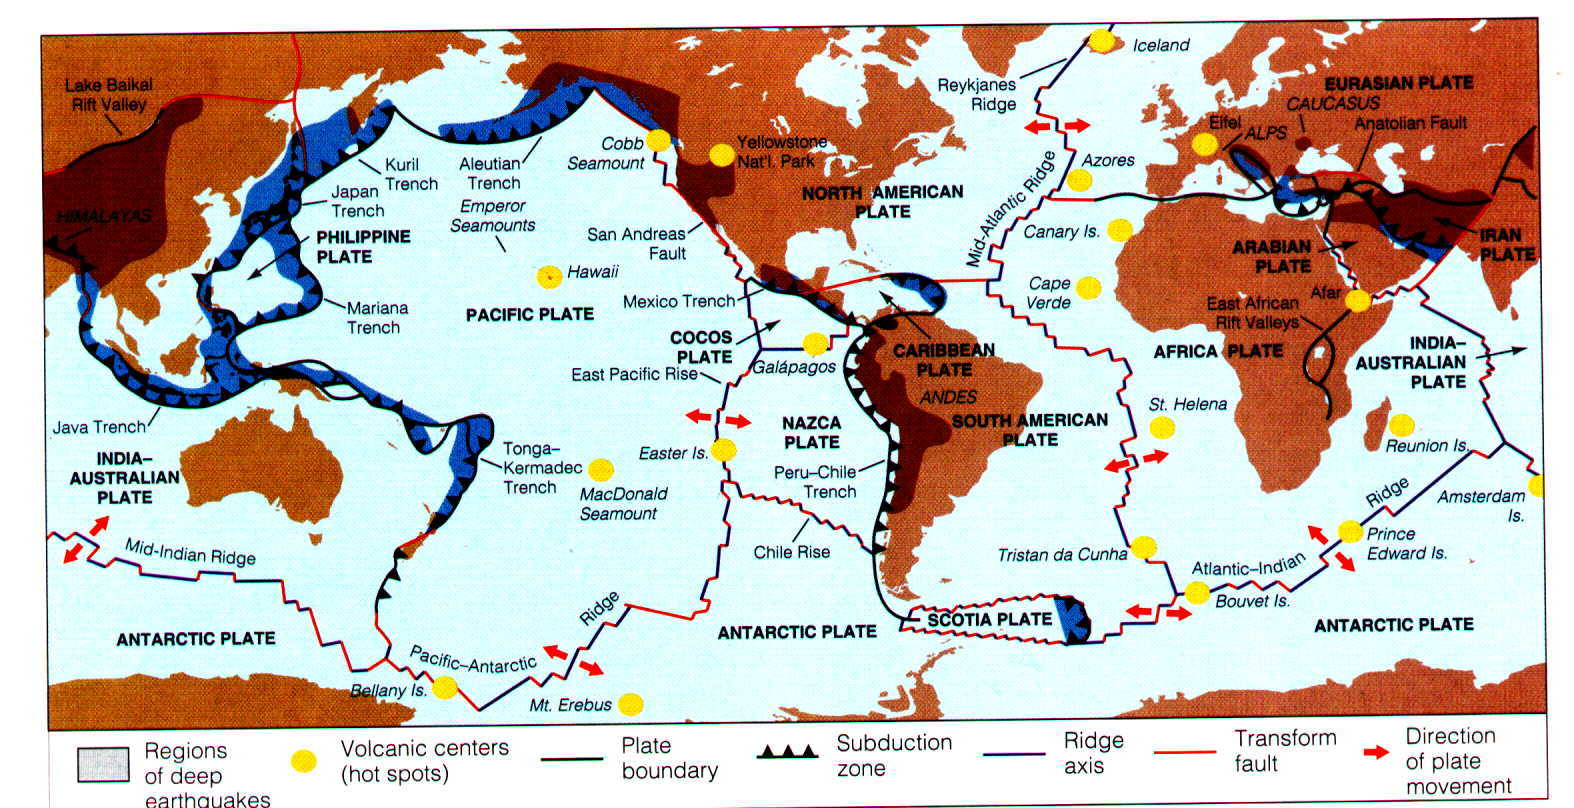 WEEK SUMMARY MOUNTAIN GEOGRAPHY - Plate tectonics map